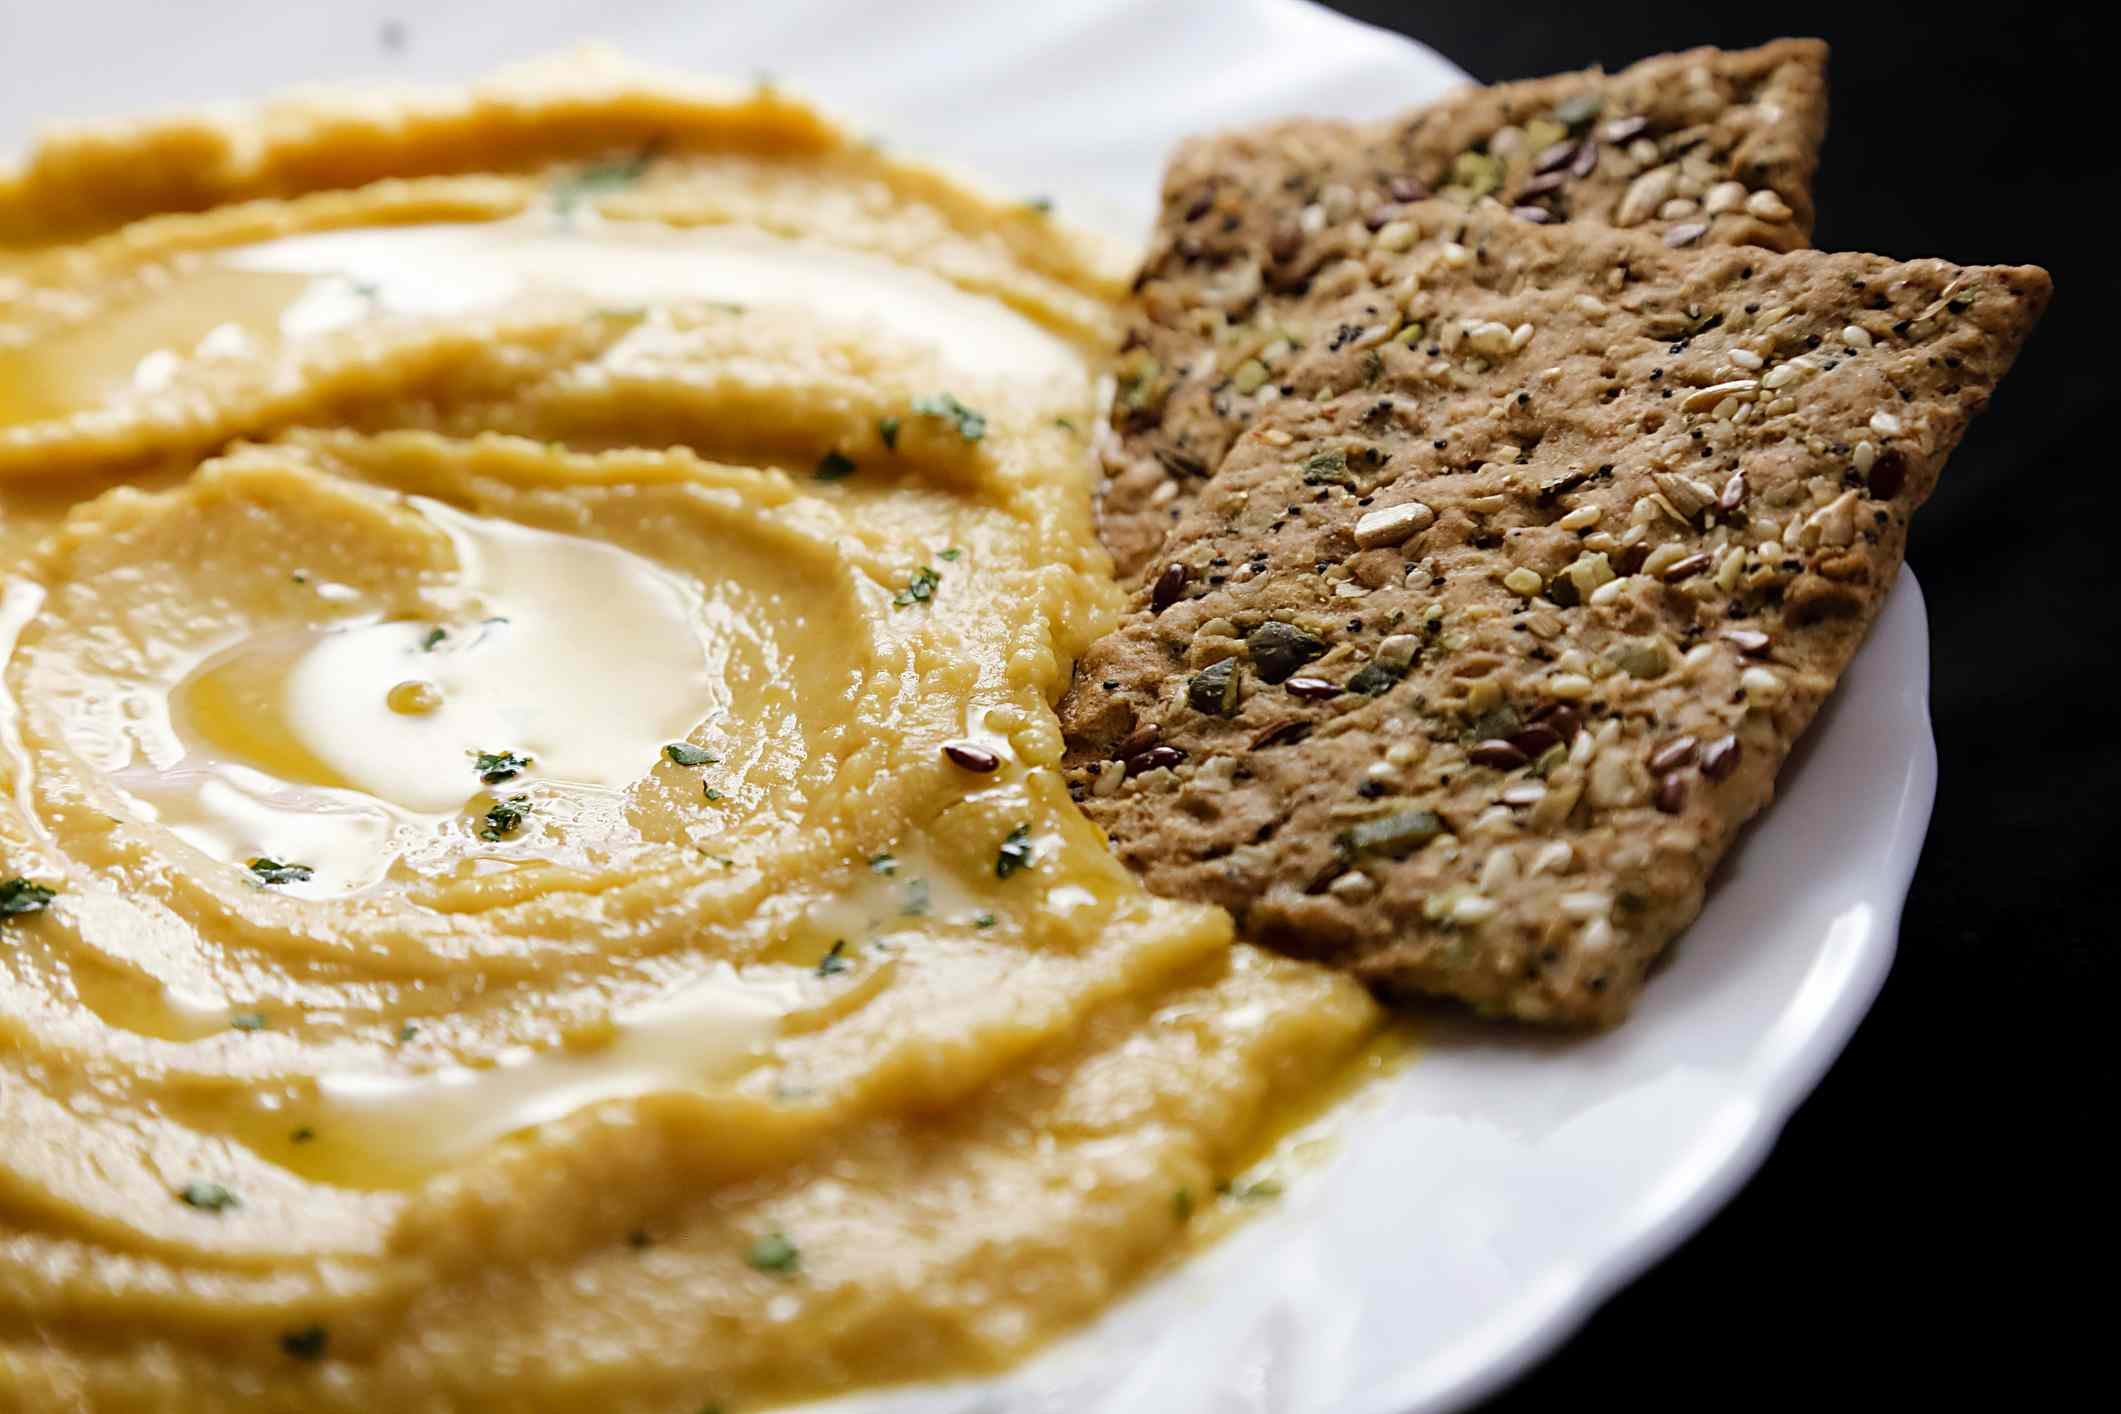 Flax crackers and hummus